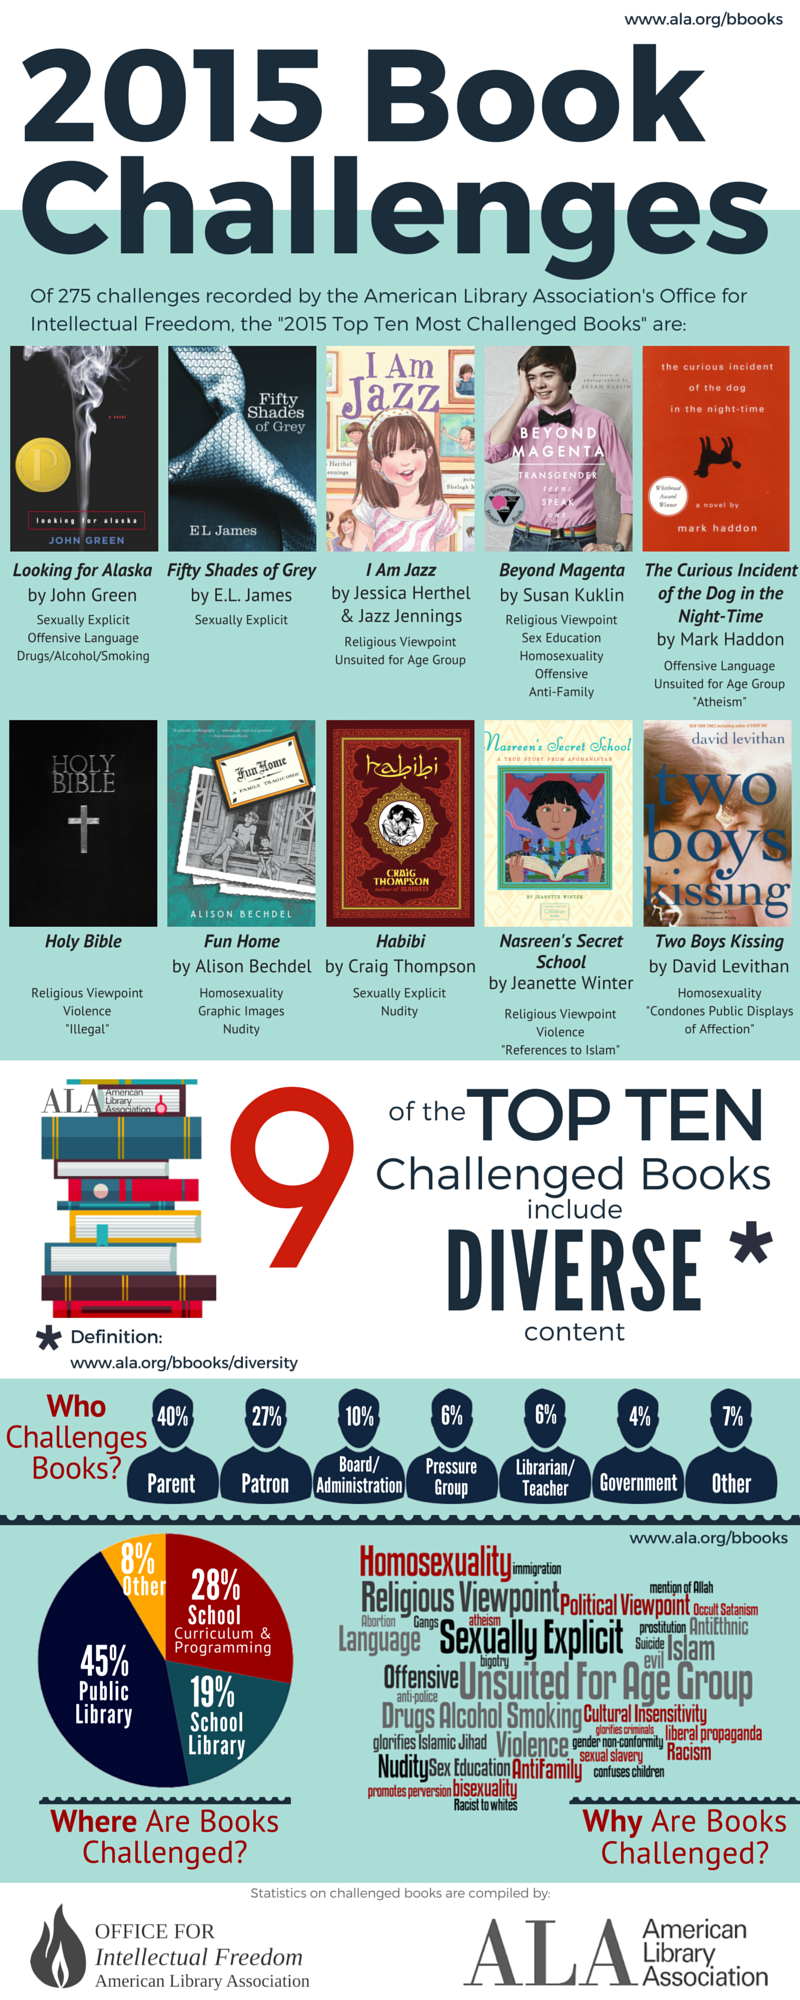 2015 Book Challenges - Top 10 Infographic